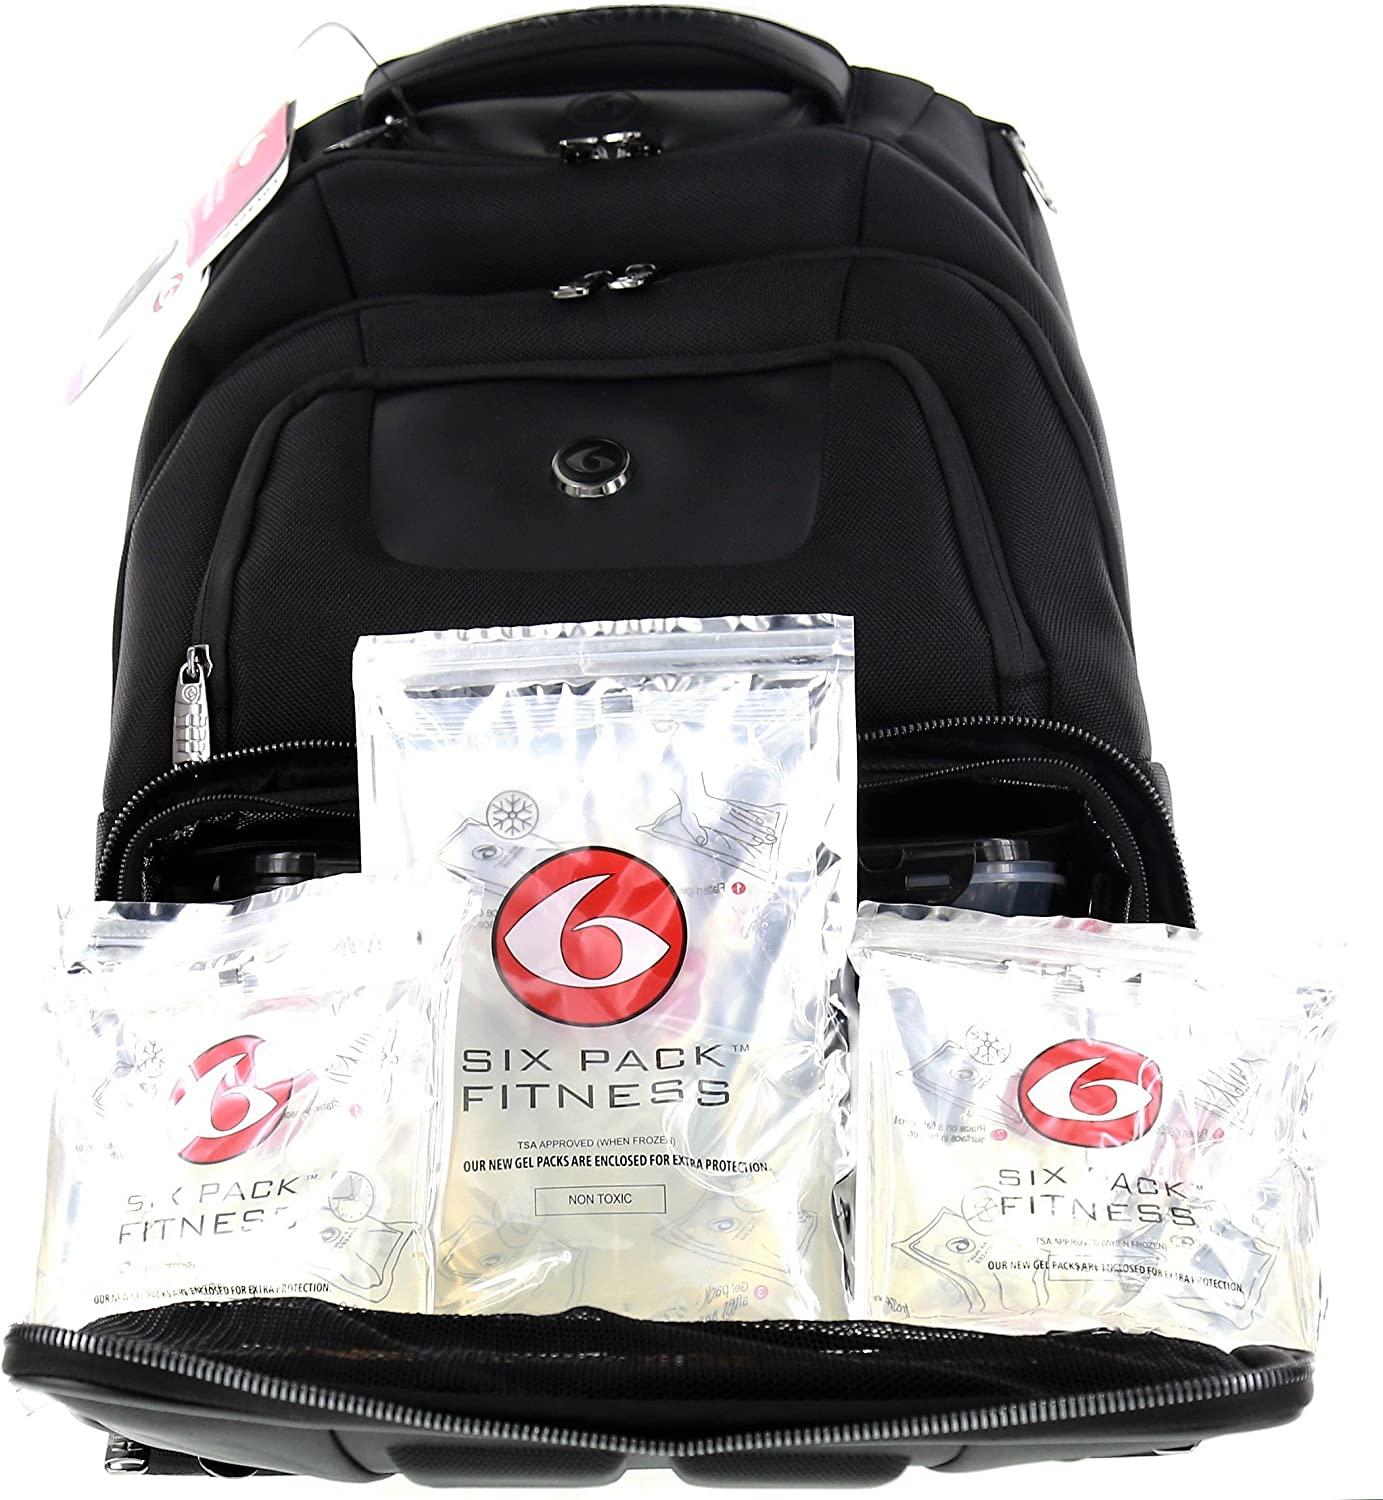 Fitness Elite Voyager 500 Backpack Stealth Black Removable Meal Core W/ZogoSportz Free Gift by 6 Pack Fitness: Amazon.es: Hogar